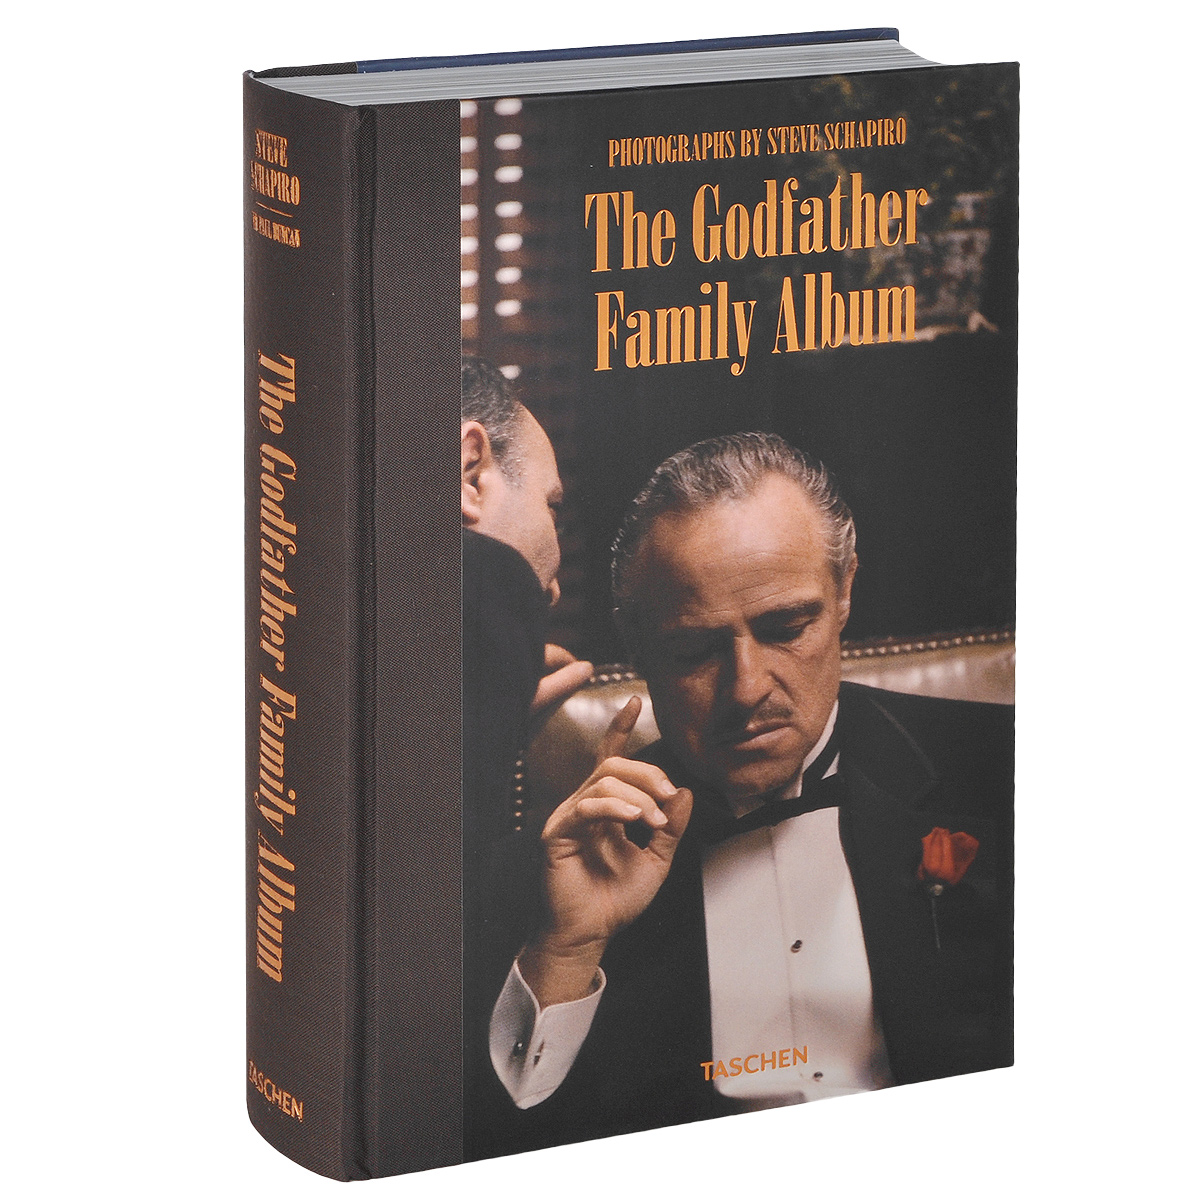 The Godfather Family Album cheapest home smart ptz wireless ip camera ip camera wifi hd ir sd card 720p onvif p2p for android ios pc remote monitoring